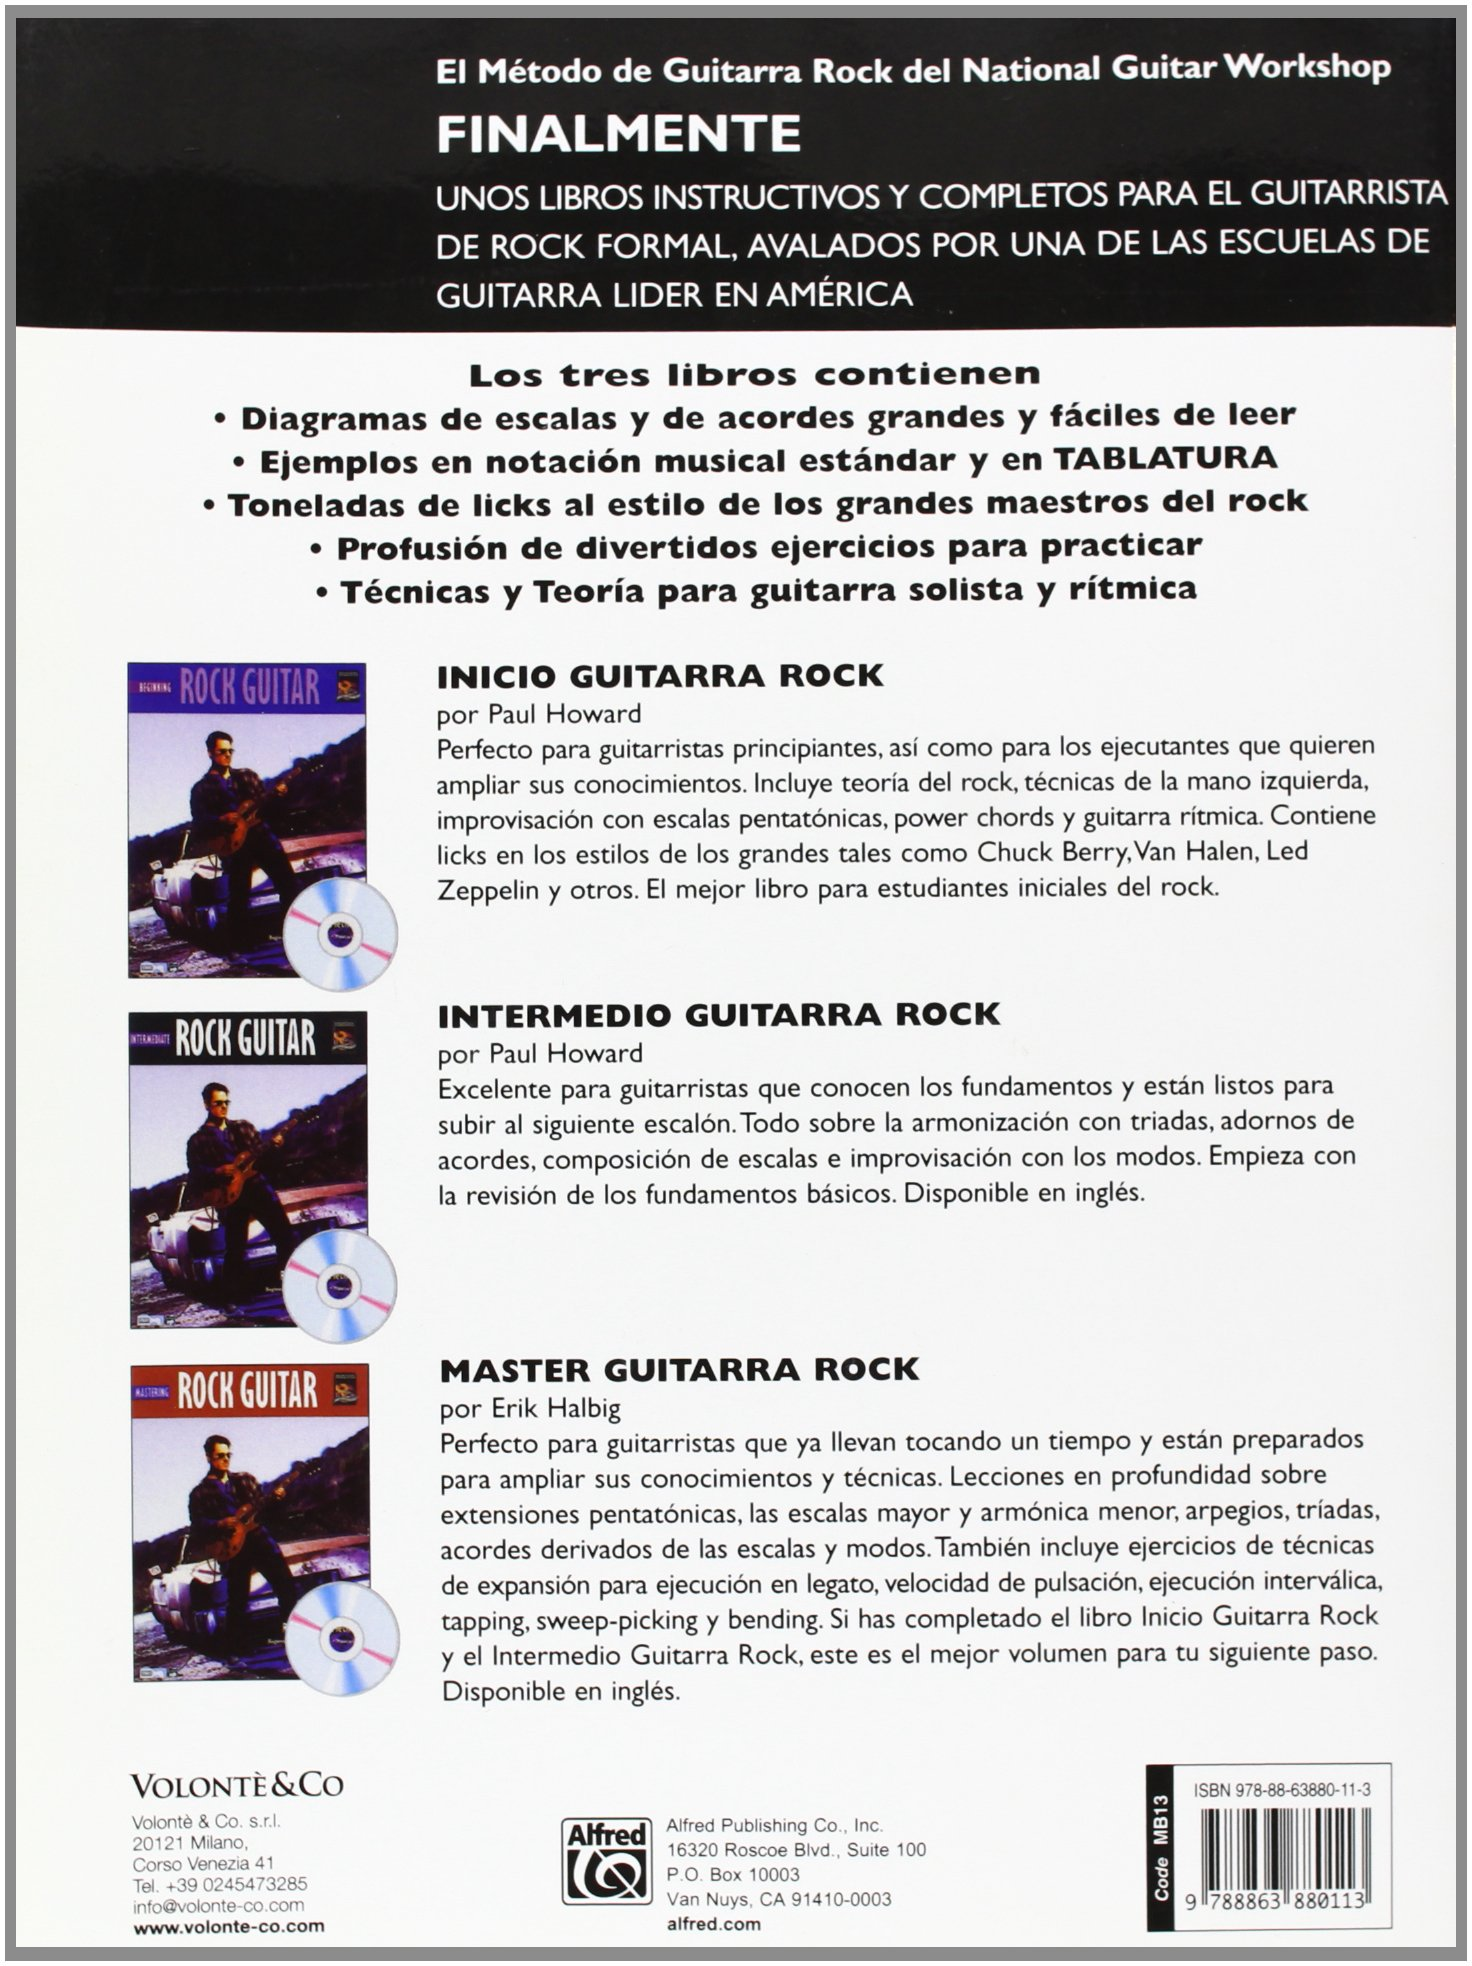 GUITARRA ROCK INTERMEDIO + CD (Complete Method): Amazon.es: Howard Paul: Libros